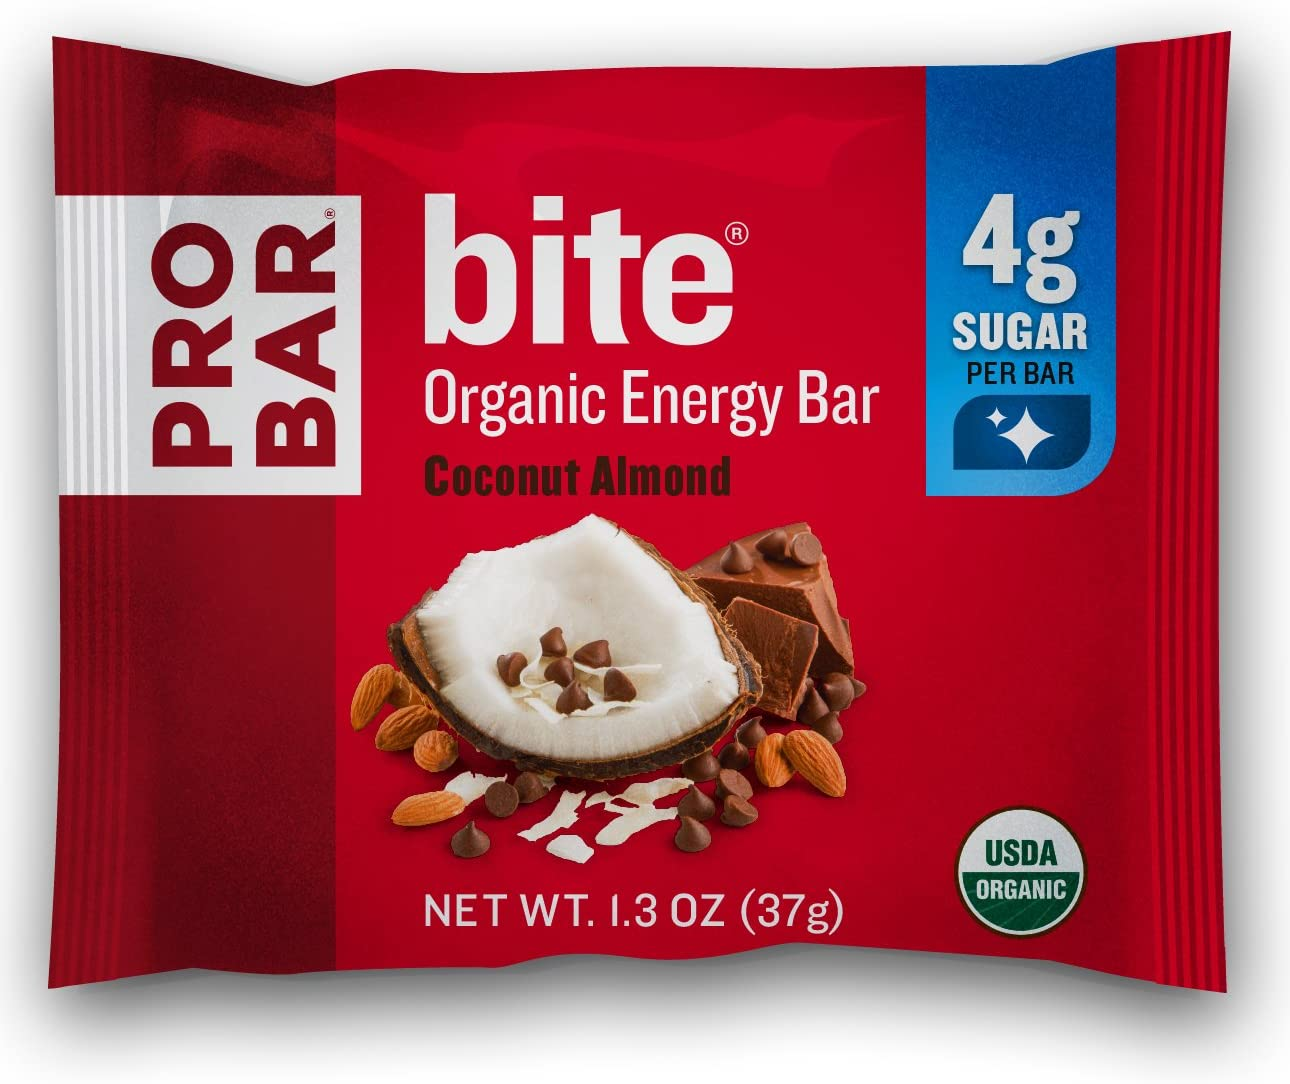 PROBAR – bite Organic Energy Bar – Coconut Almond – USDA Organic, Gluten-Free, Non-GMO Project Verified, Plant-Based Whole Food Ingredients, 6g Protein, 4g Fiber – Pack of 12